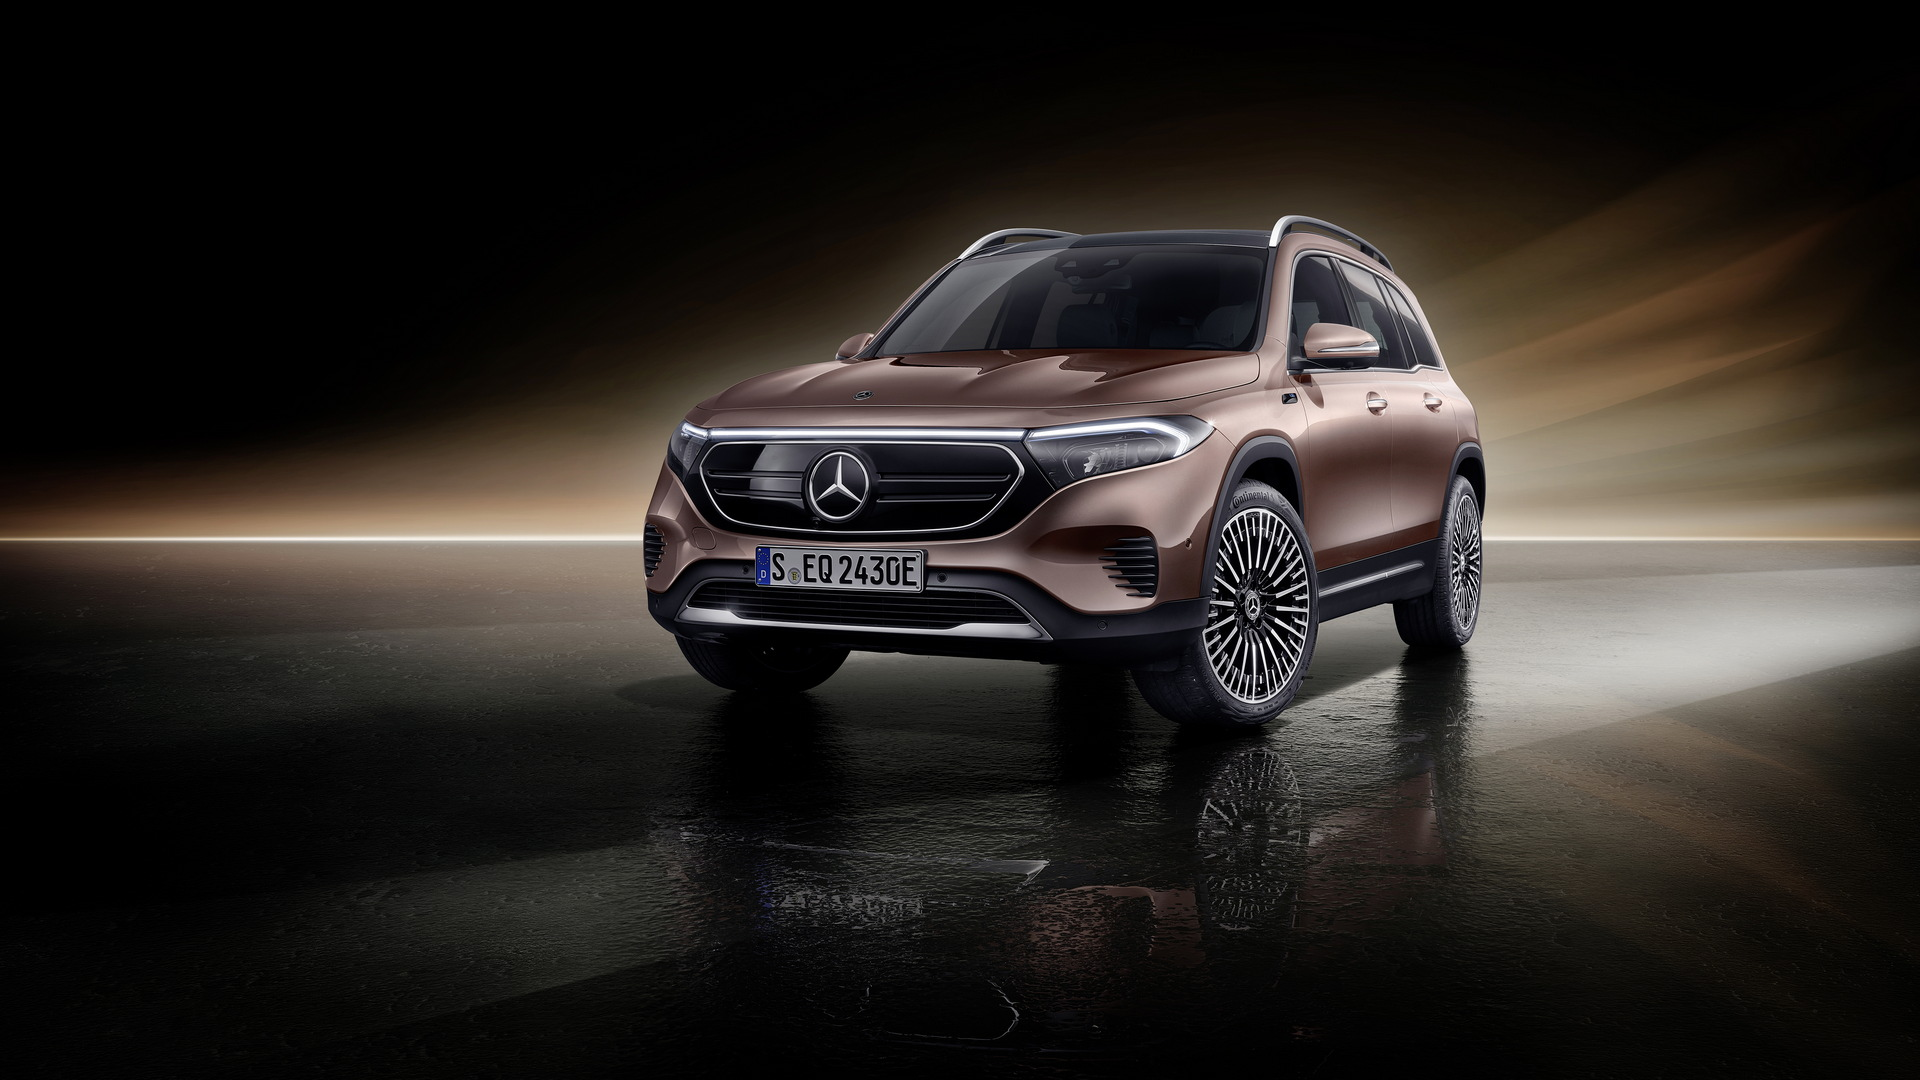 2022 Mercedes-Benz EQB electric SUV shows up in Europe, U.S. sales affirmed